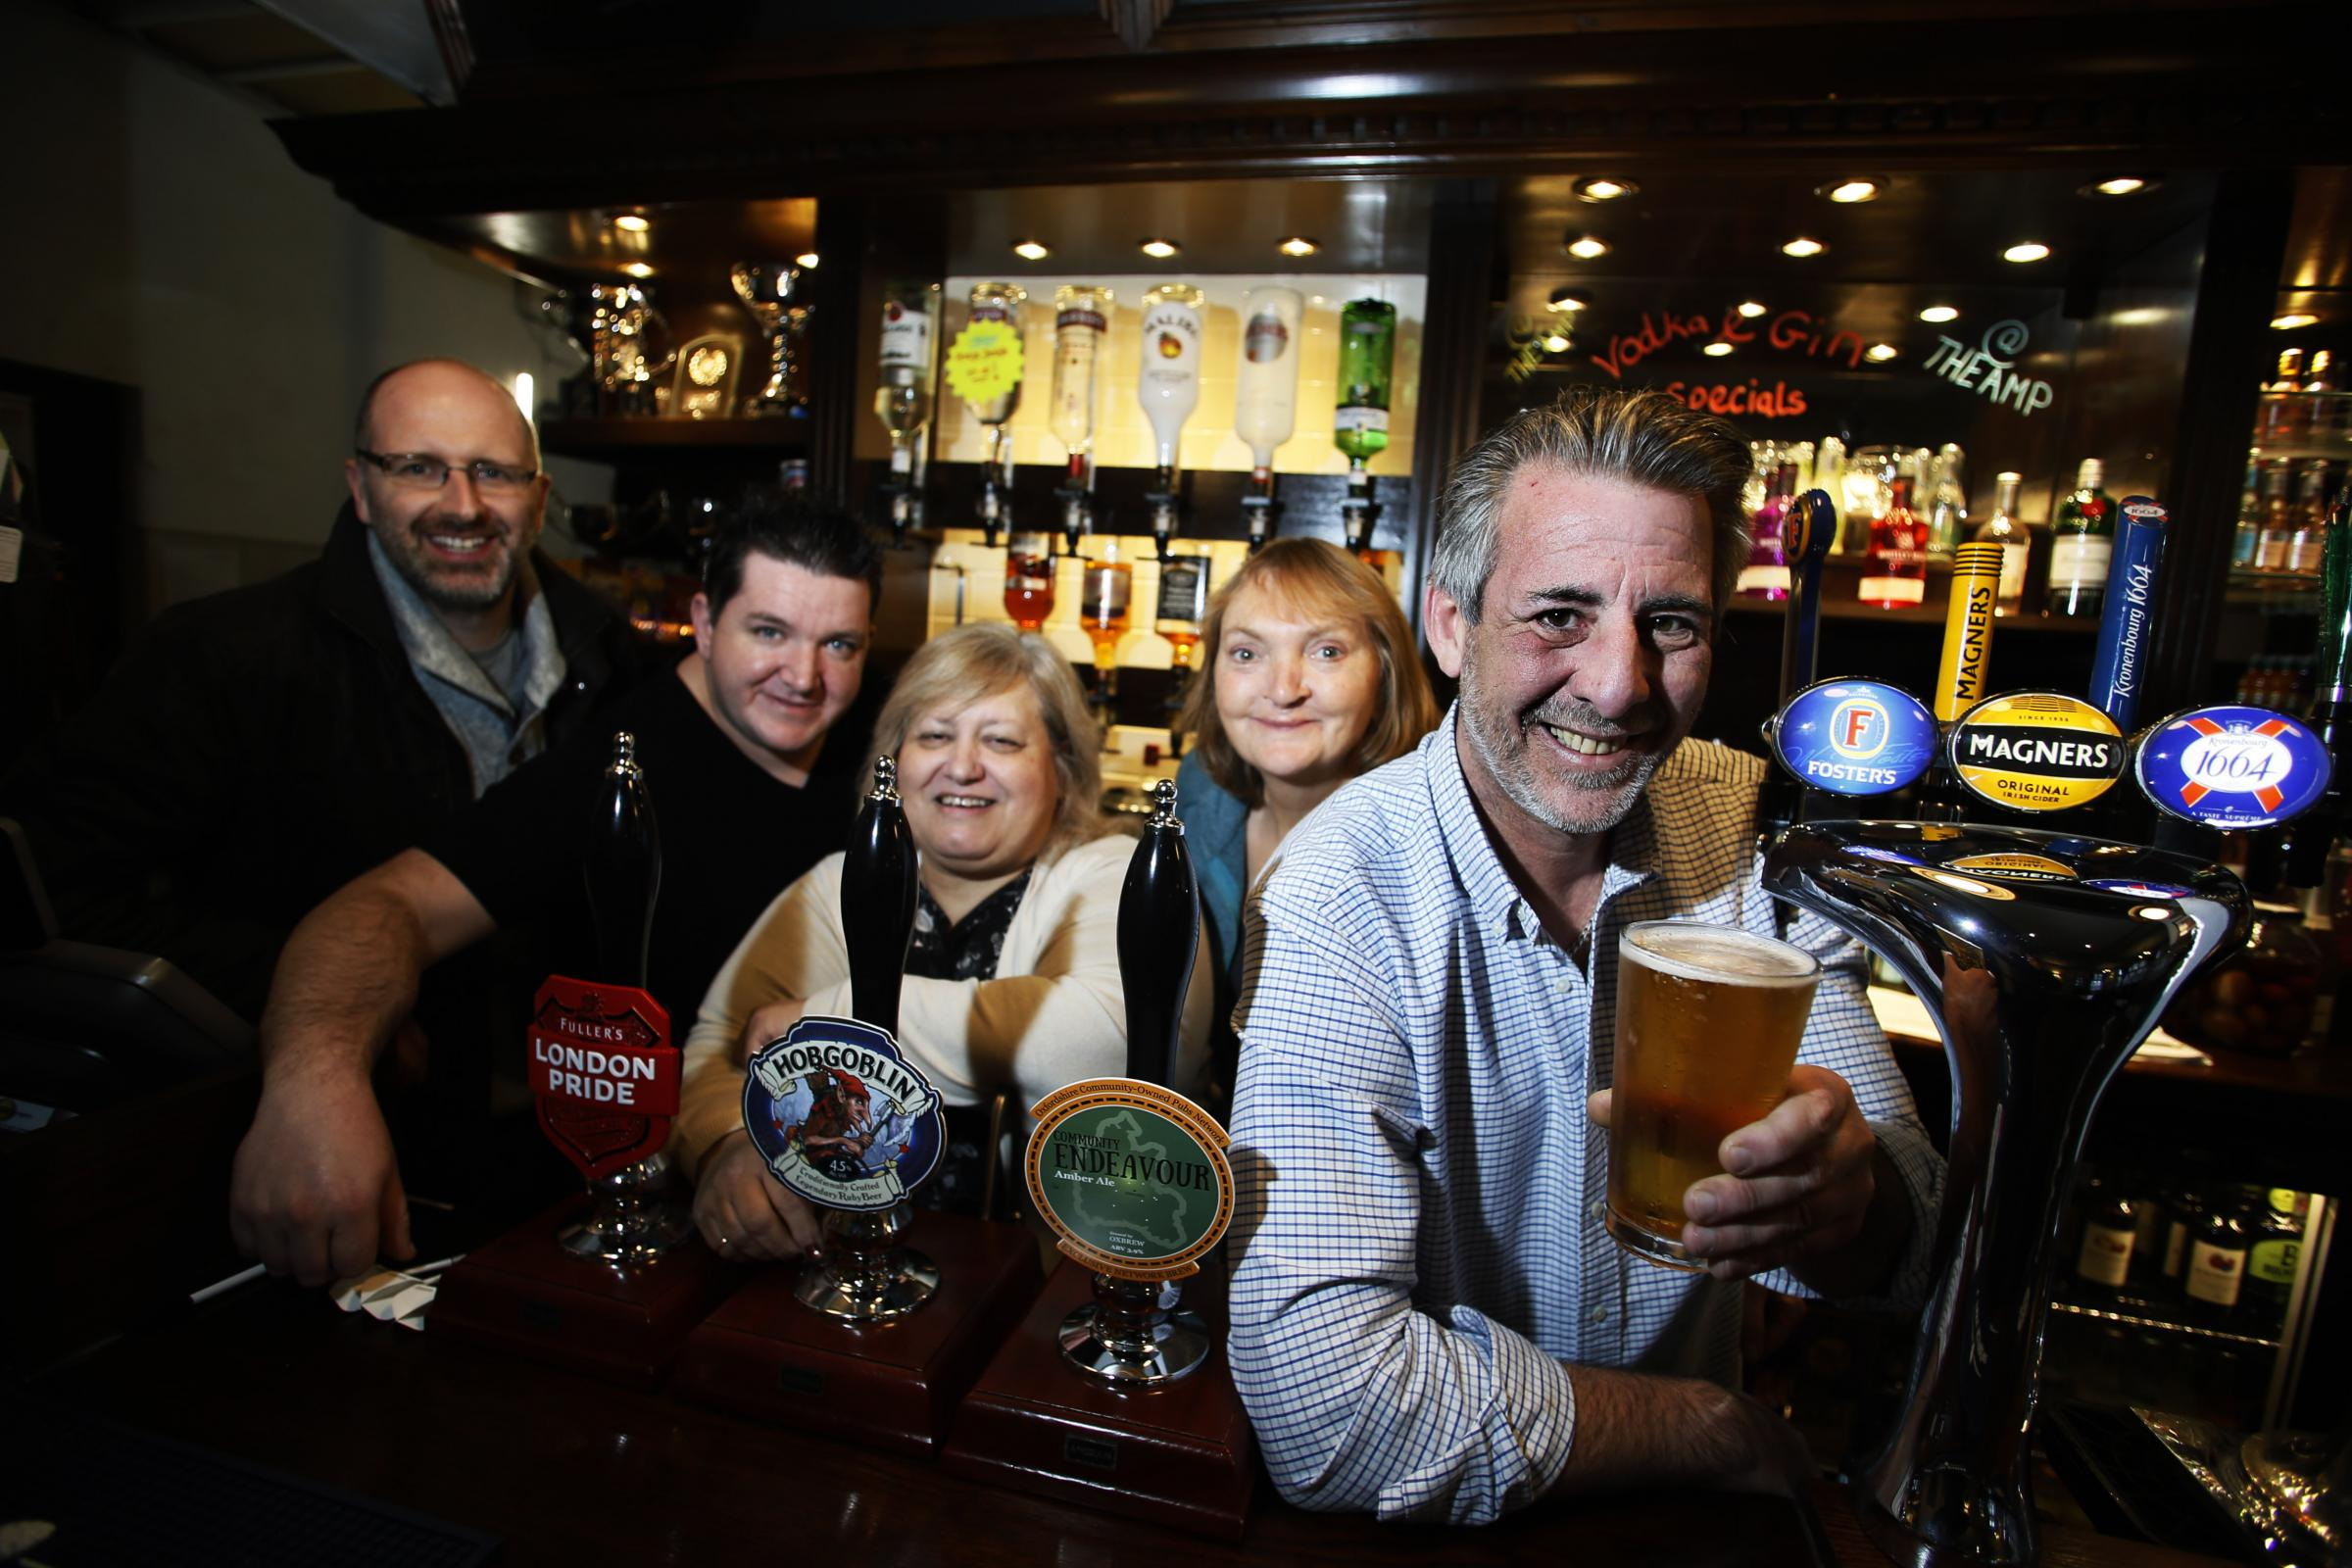 The Ampleforth Arms community pub in Risinghurst is celebrating a year since opening. L-R: Robert Cockerell, David Kavanagh, Lyn Simms, Tacye Sharp and Chris Kaymak